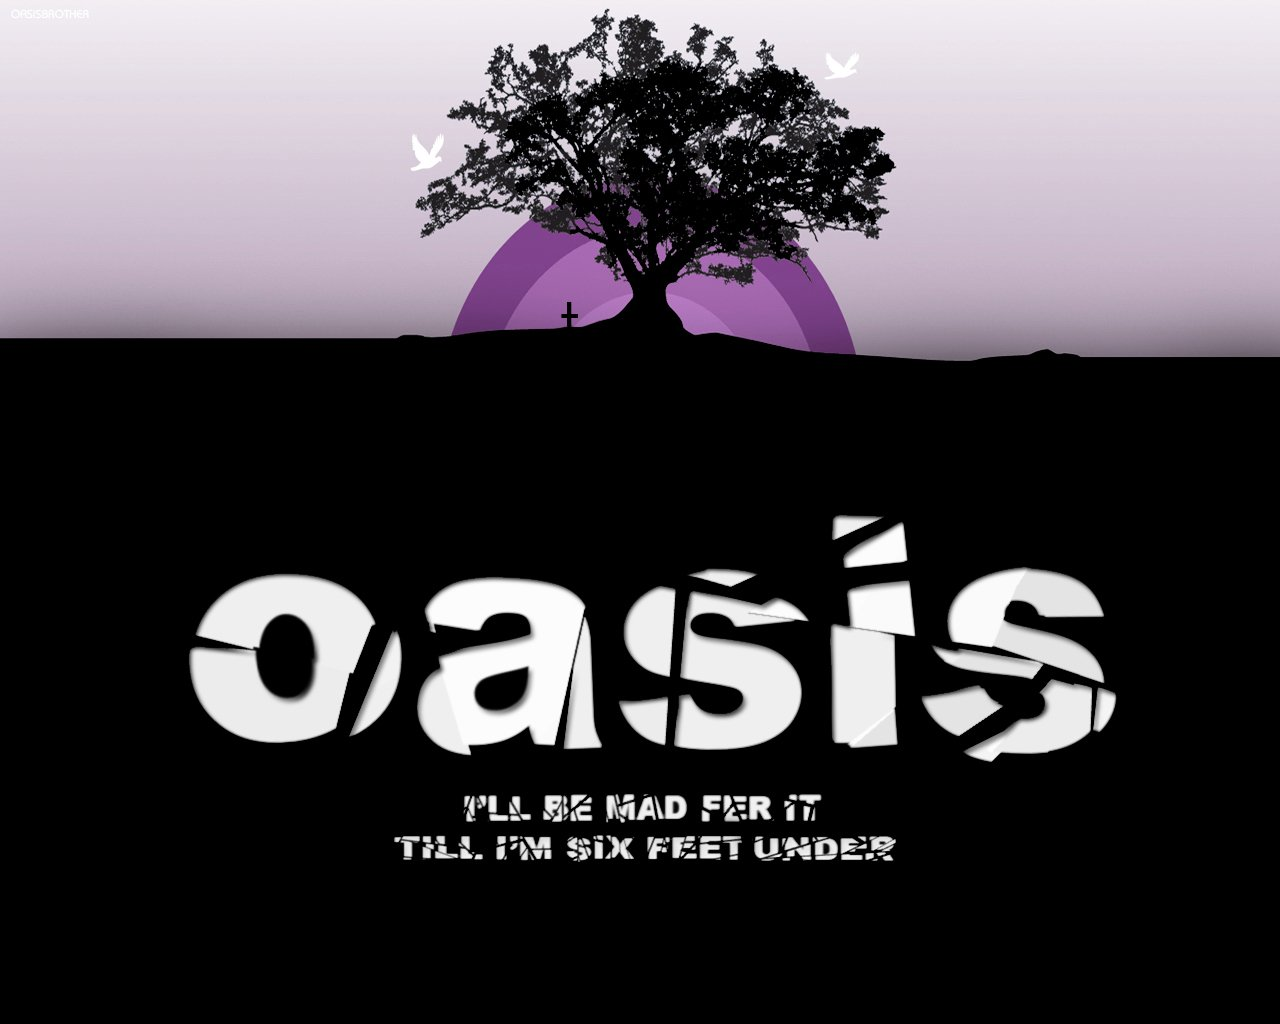 Oasis images Oasis Wallpaper HD wallpaper and background 1280x1024